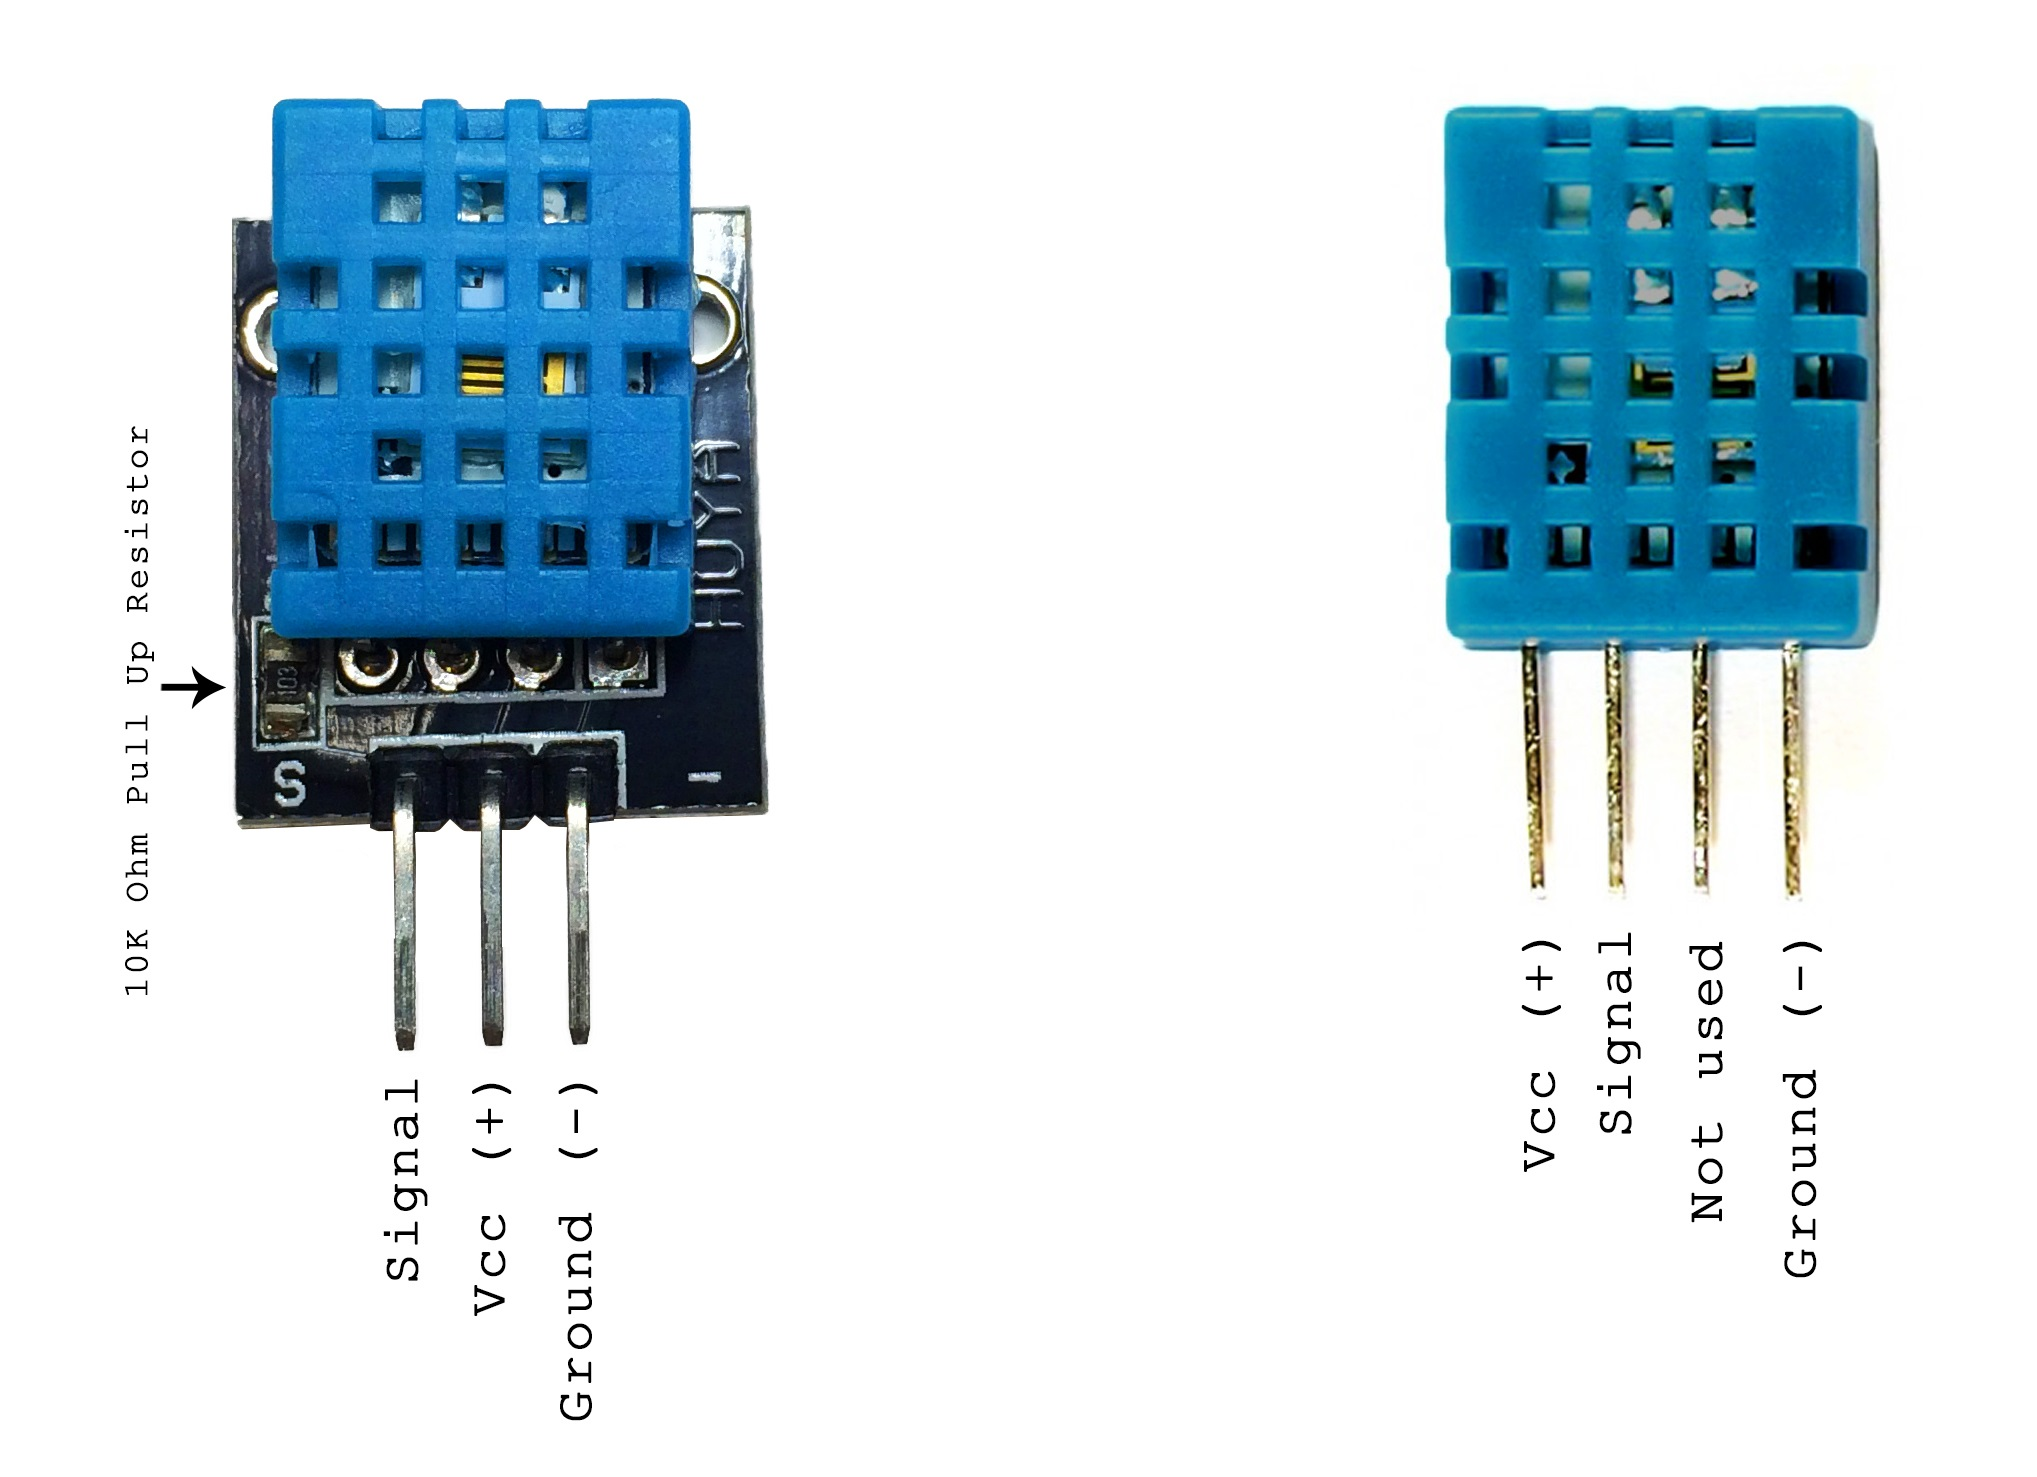 Electric thermometer by using DHT11 sensor module